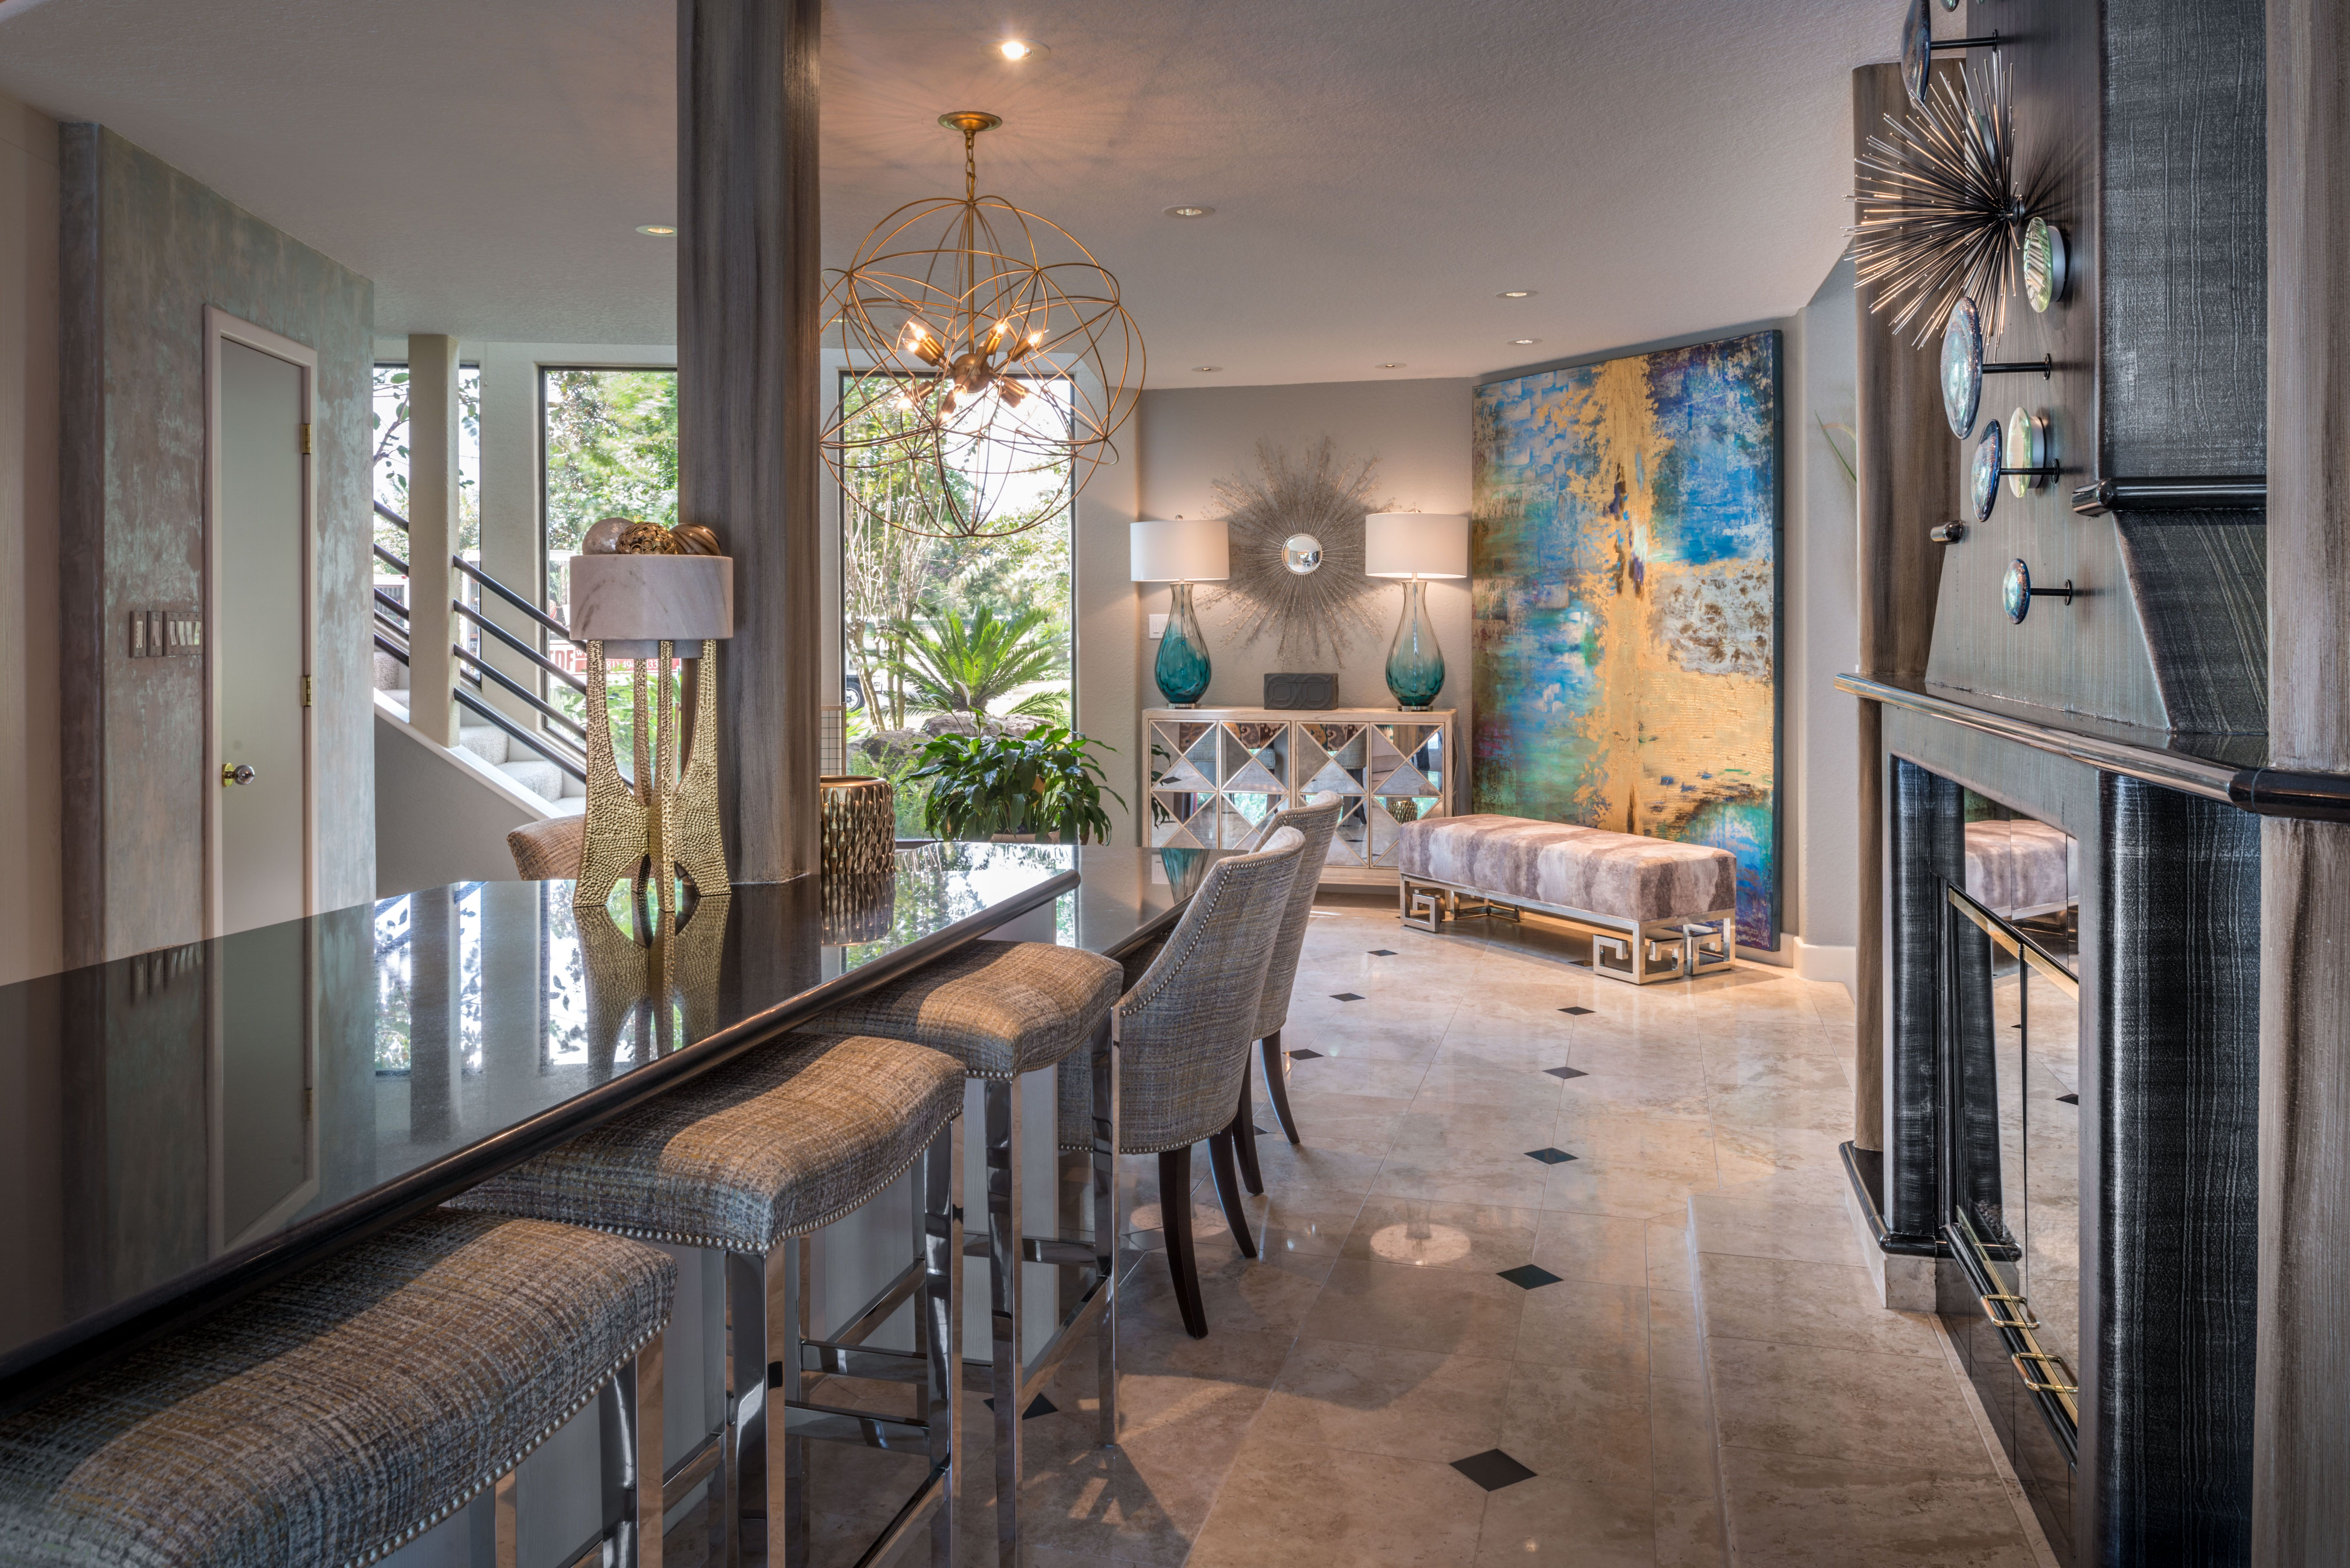 Designed by The Design Firm in Stafford, Texas #interiors #interiordesignideas #design #interiordesign #interiordesigners #kitcheninspiration #kitchenisland #openconcept